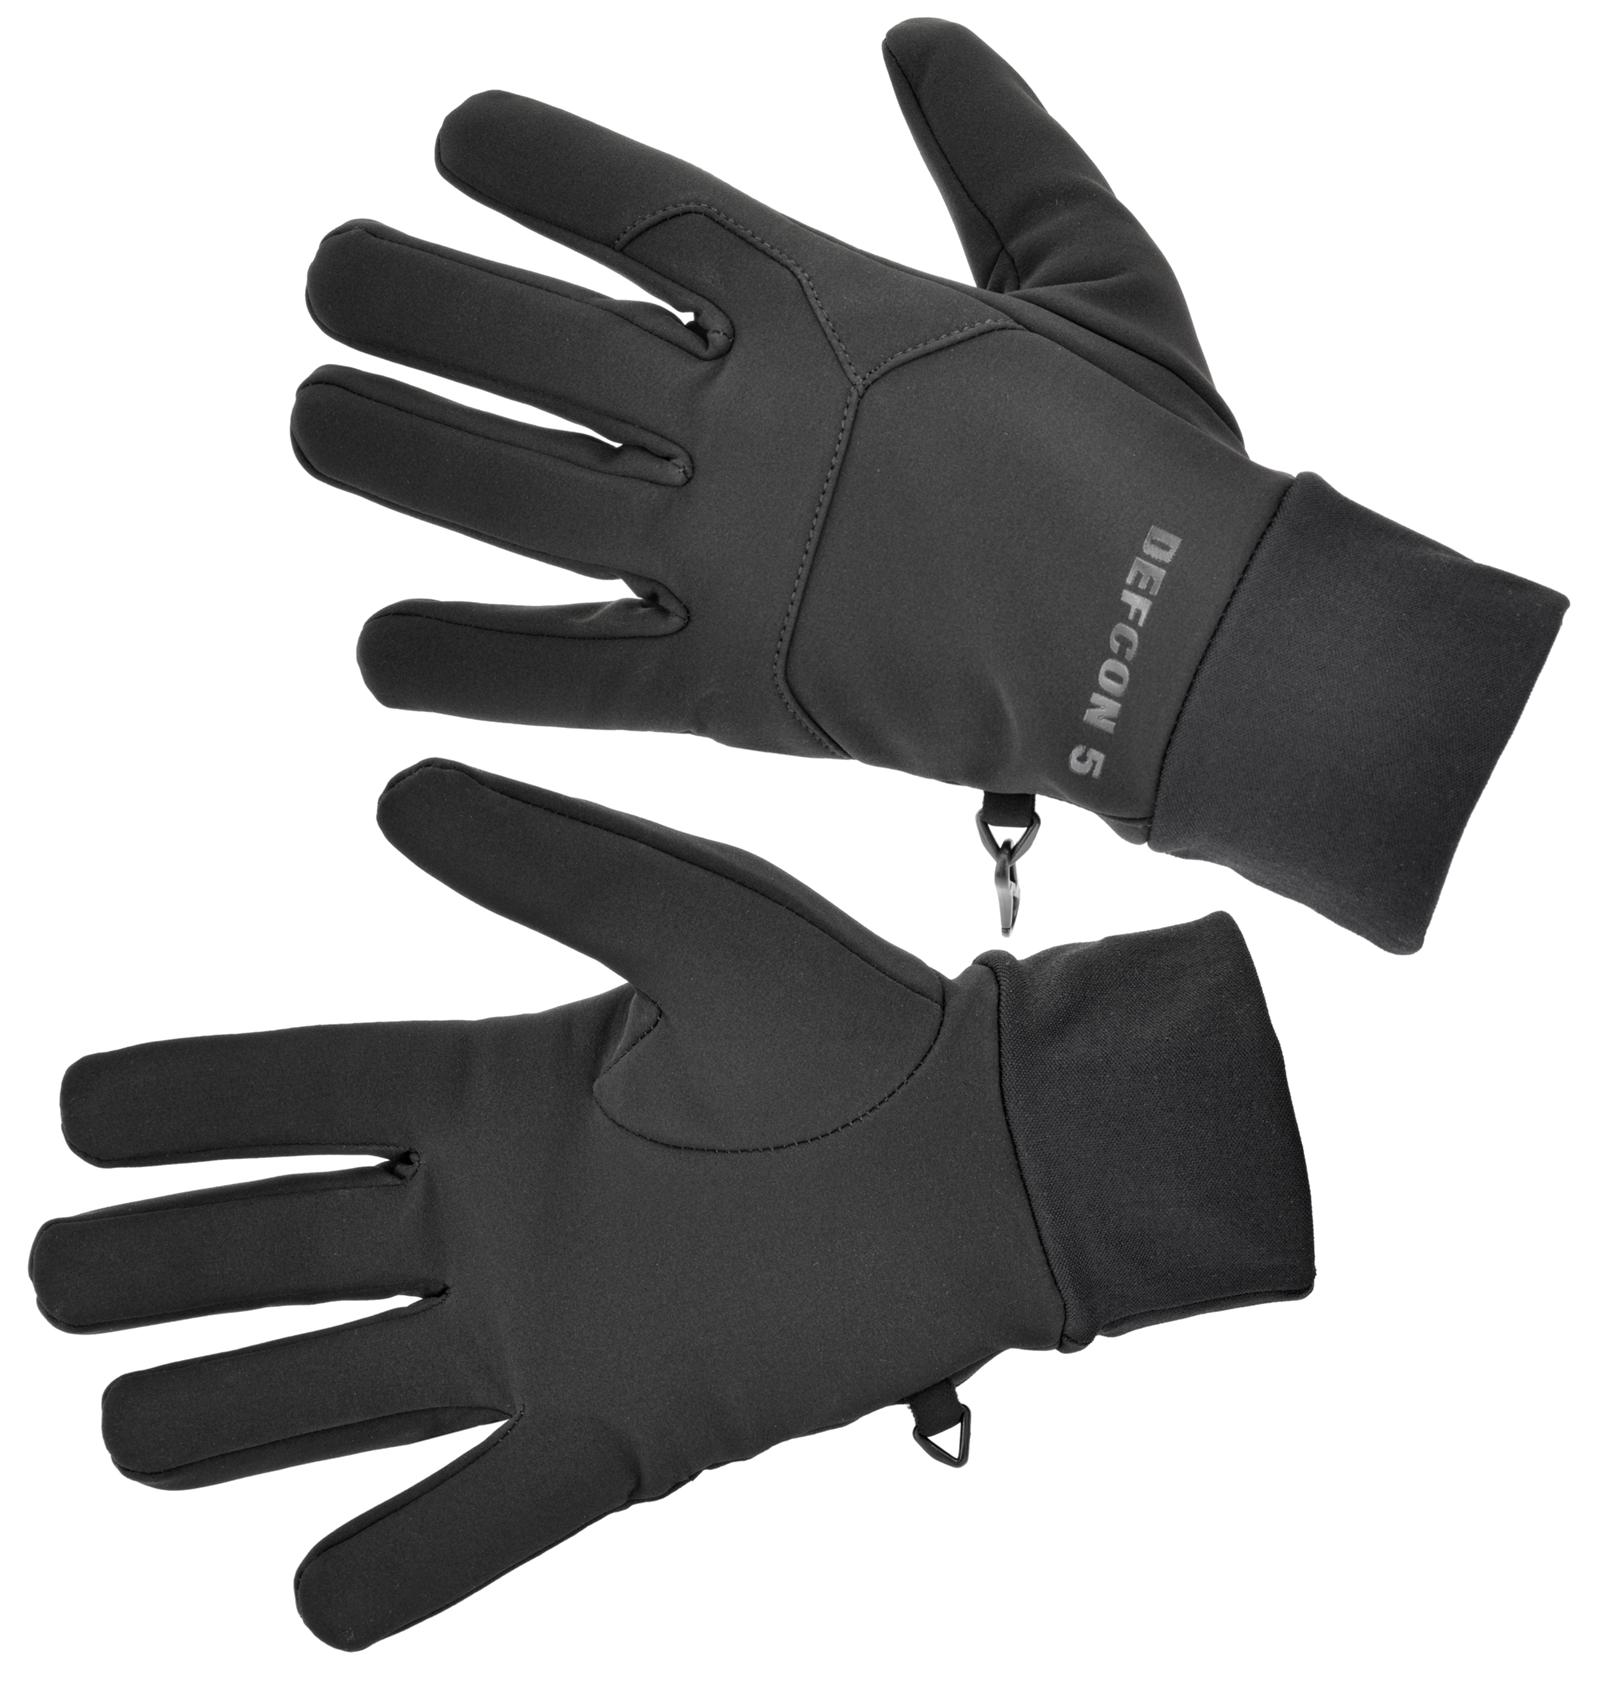 DEFCON 5 SOFT SHELL GLOVES